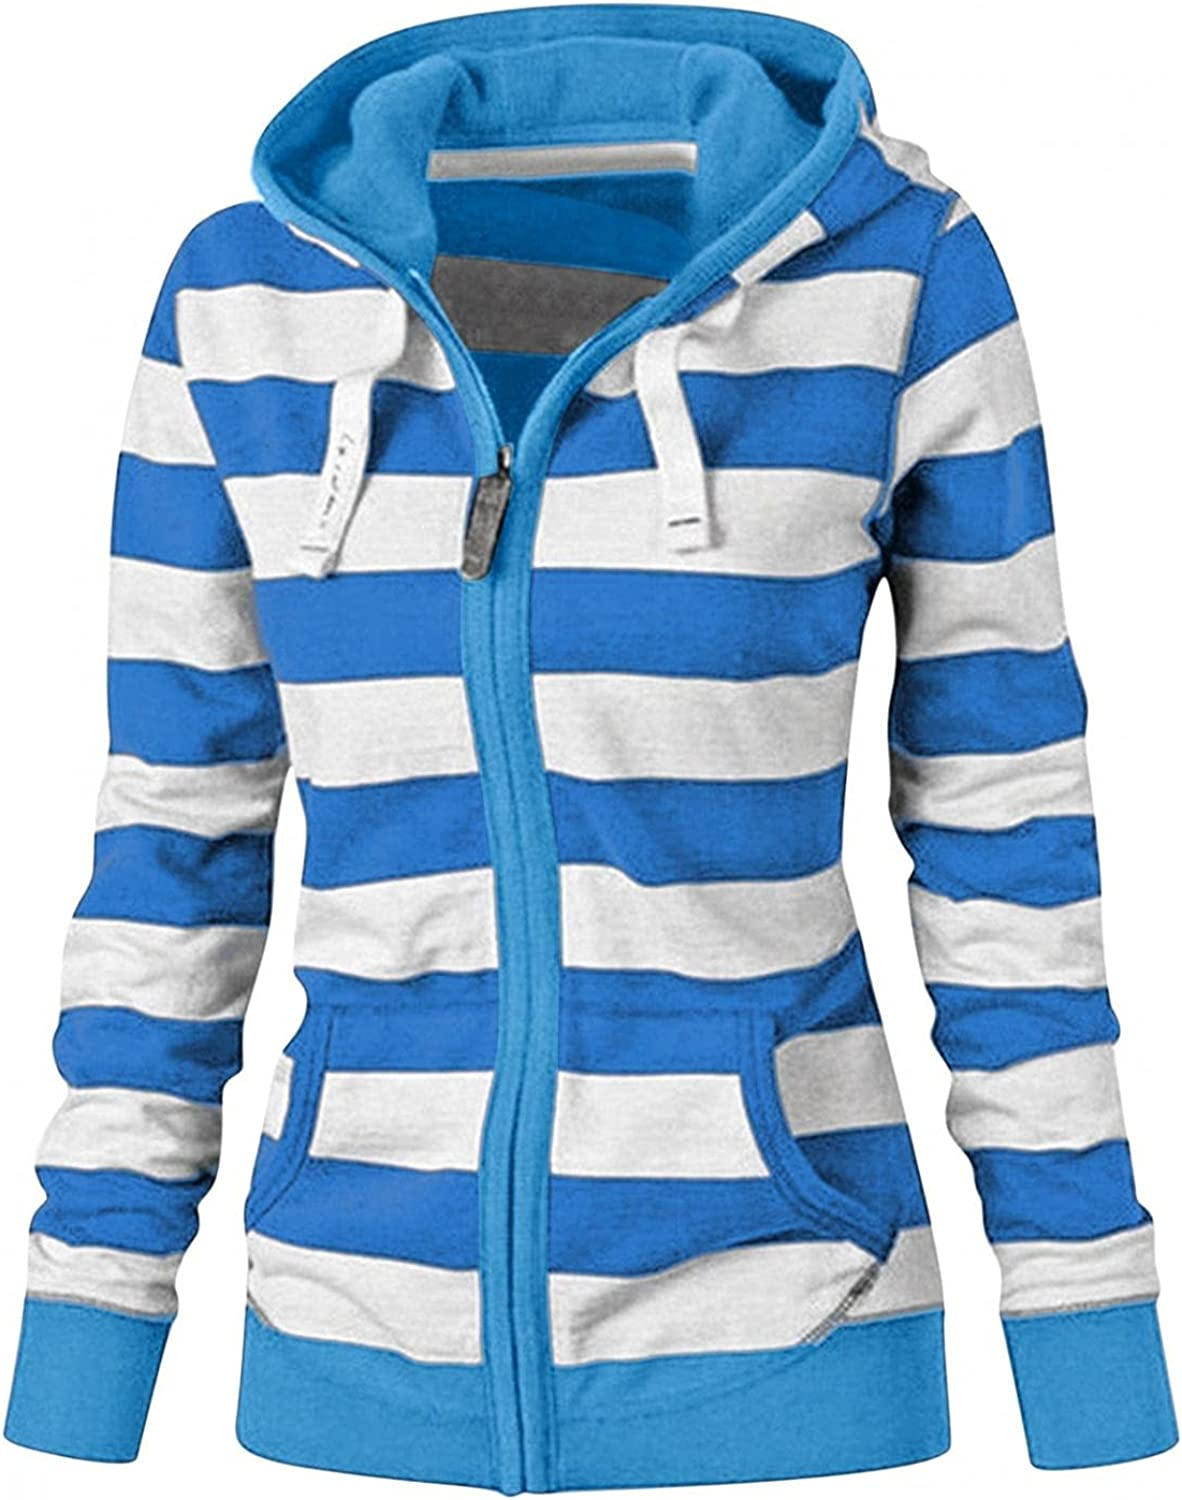 Sweatshirts for Women, Womens Color Stripe Print Long Sleeve Pullover Loose Fit Hoodies with Pockets Cardigan